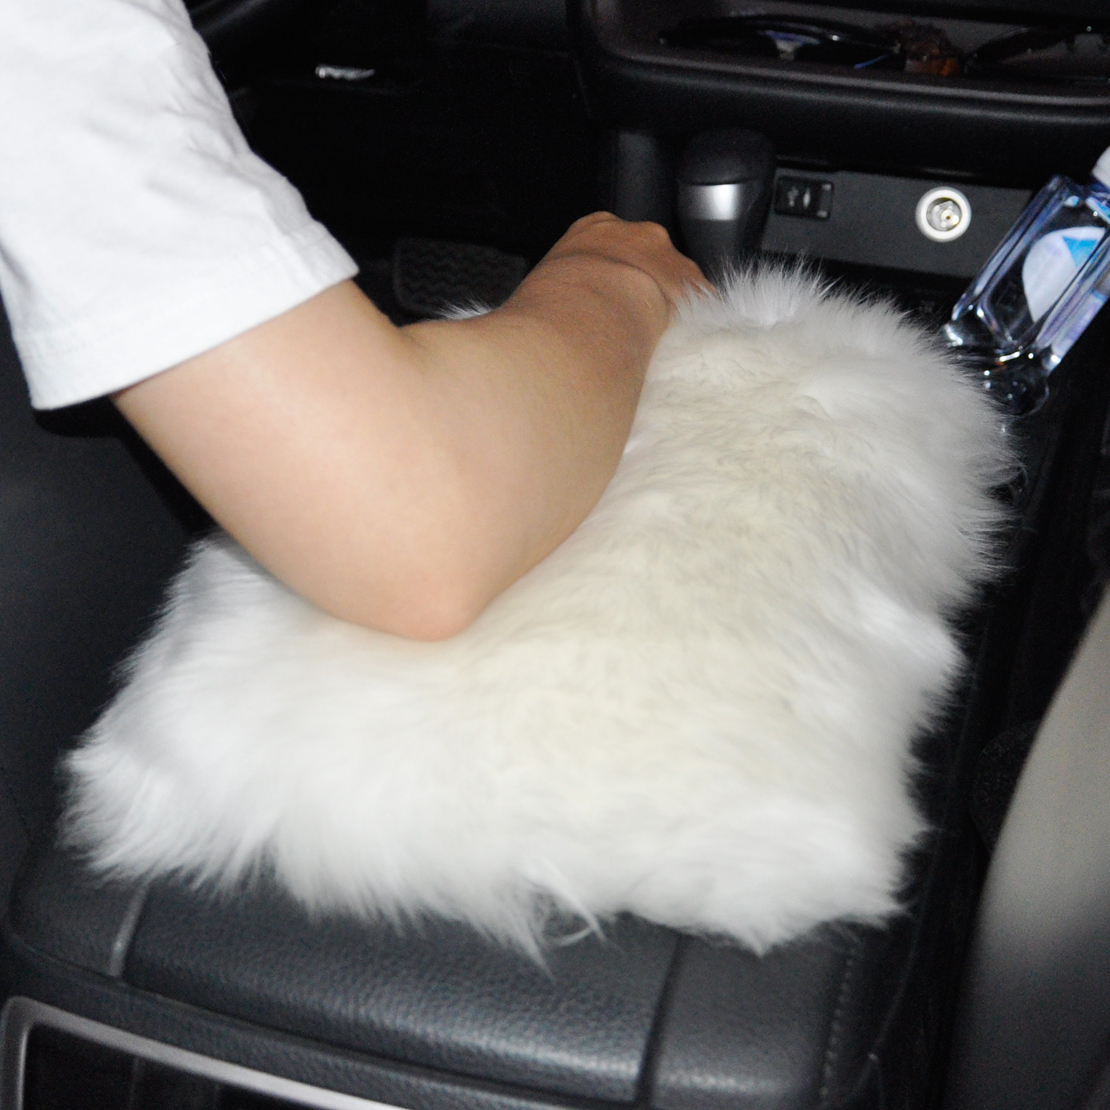 DWCX Car SUV Center Console Armrest Sheepskin Wool Box Cover Pad Cushion Soft Mat For VW Audi Ford Toyota Chevrolet Peugeot Kia